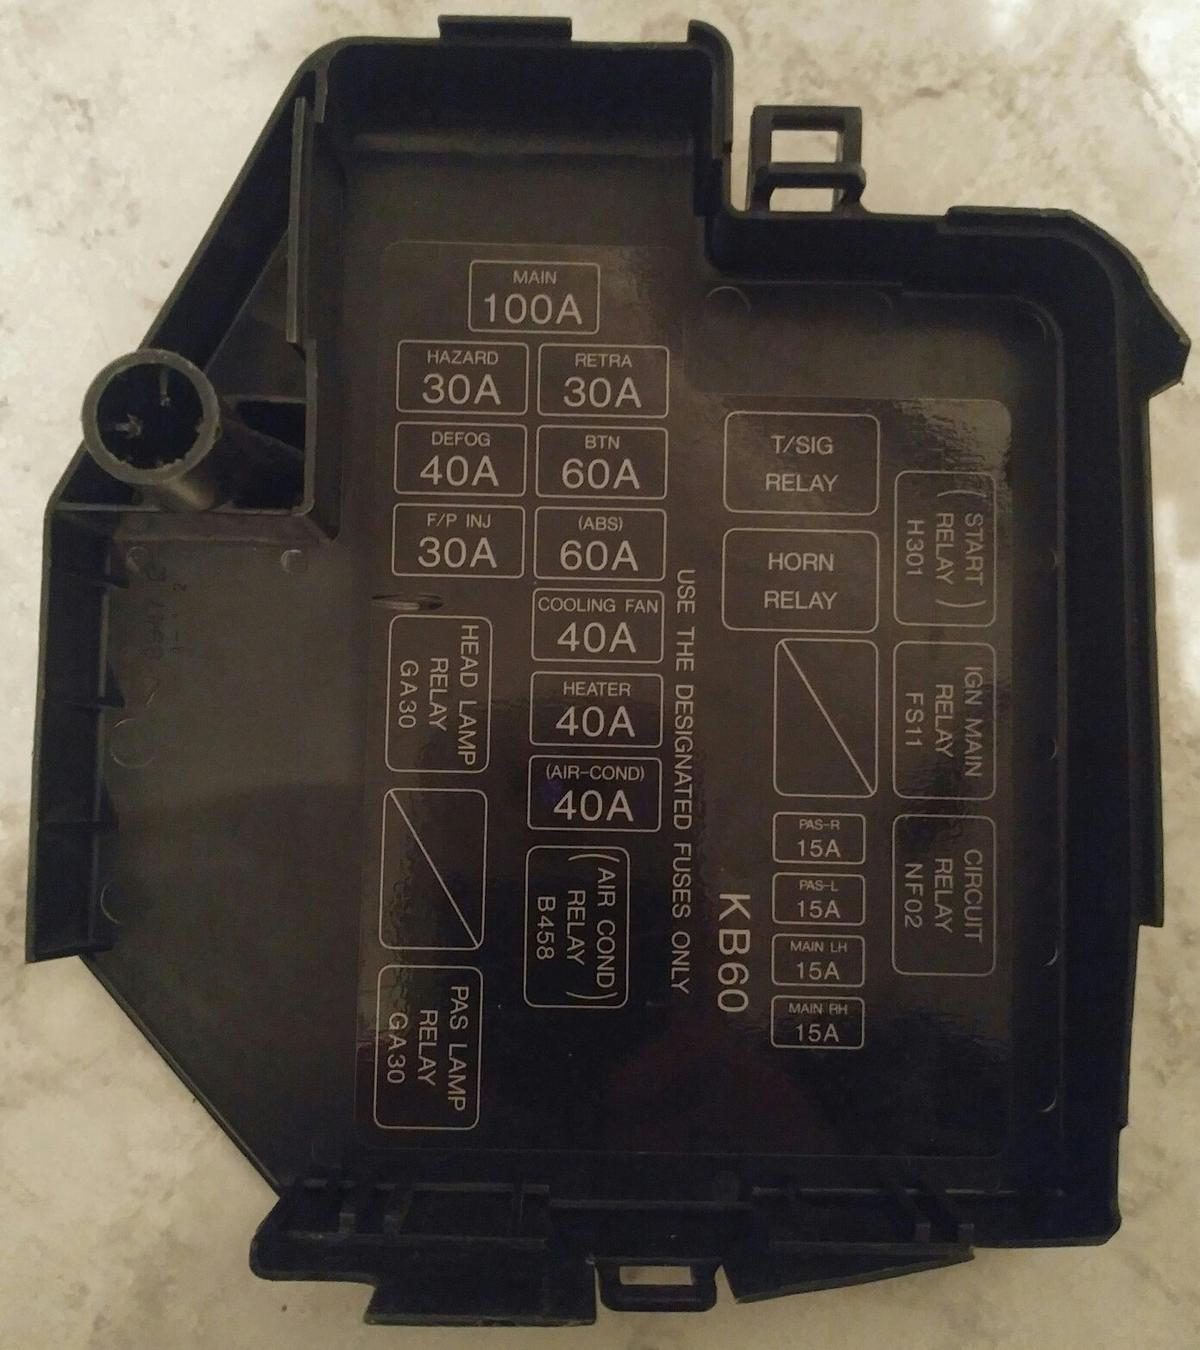 ford probe 2 / 24v fuse box abdeckung !!! in 67069 ludwigshafen am rhein  for €6.00 for sale | shpock  shpock